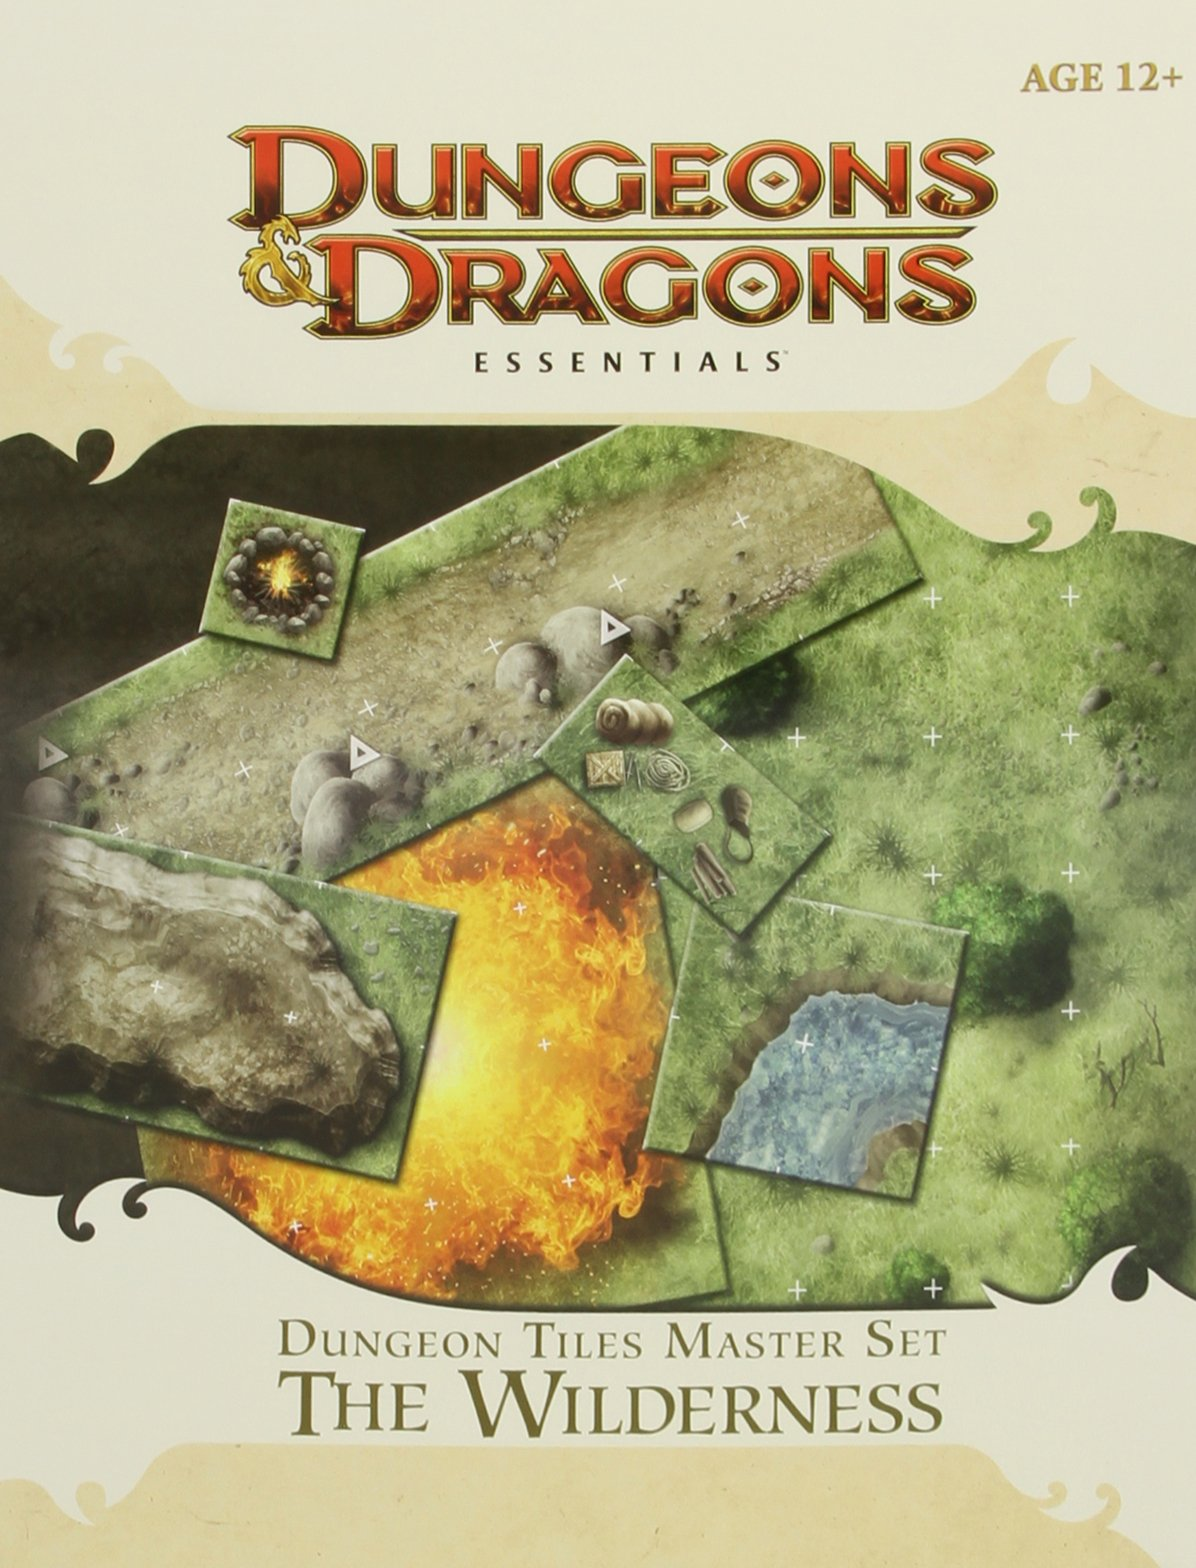 Dungeon Tiles Master Set - The Wilderness: An Essential Dungeons & Dragons Accessory (4th Edition D&D) PDF